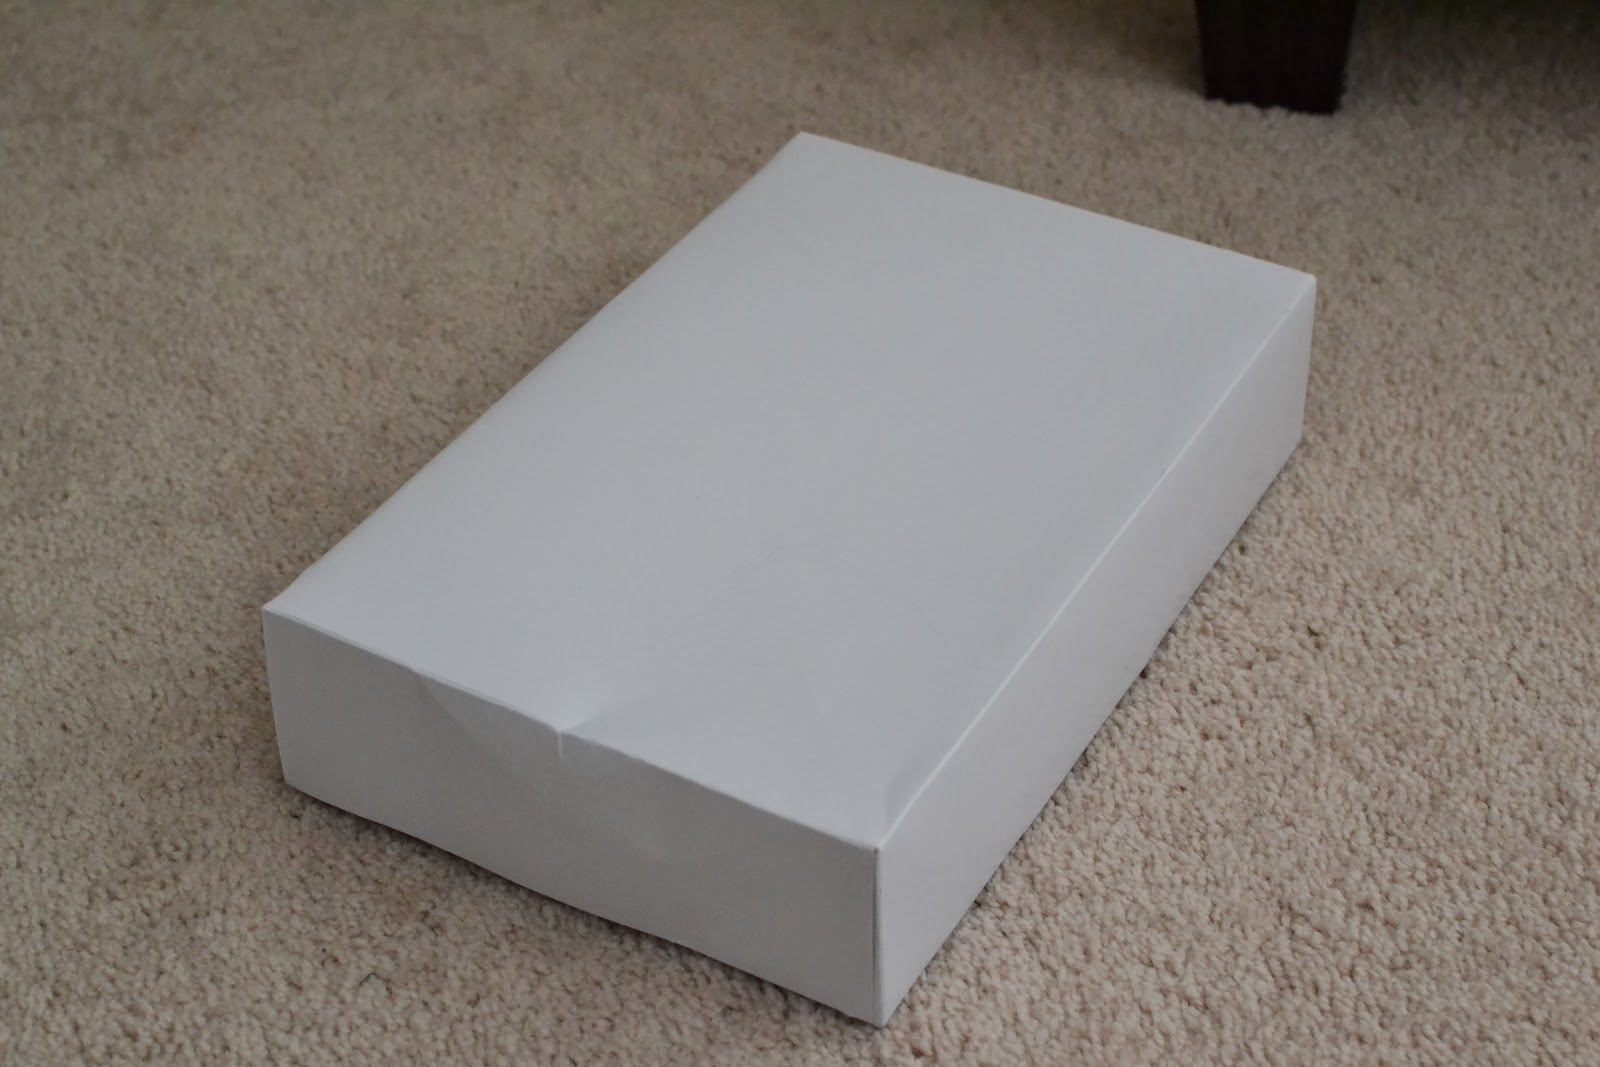 How To Make A Whole Box Out Of A Shirt Box Lid Or Bottom